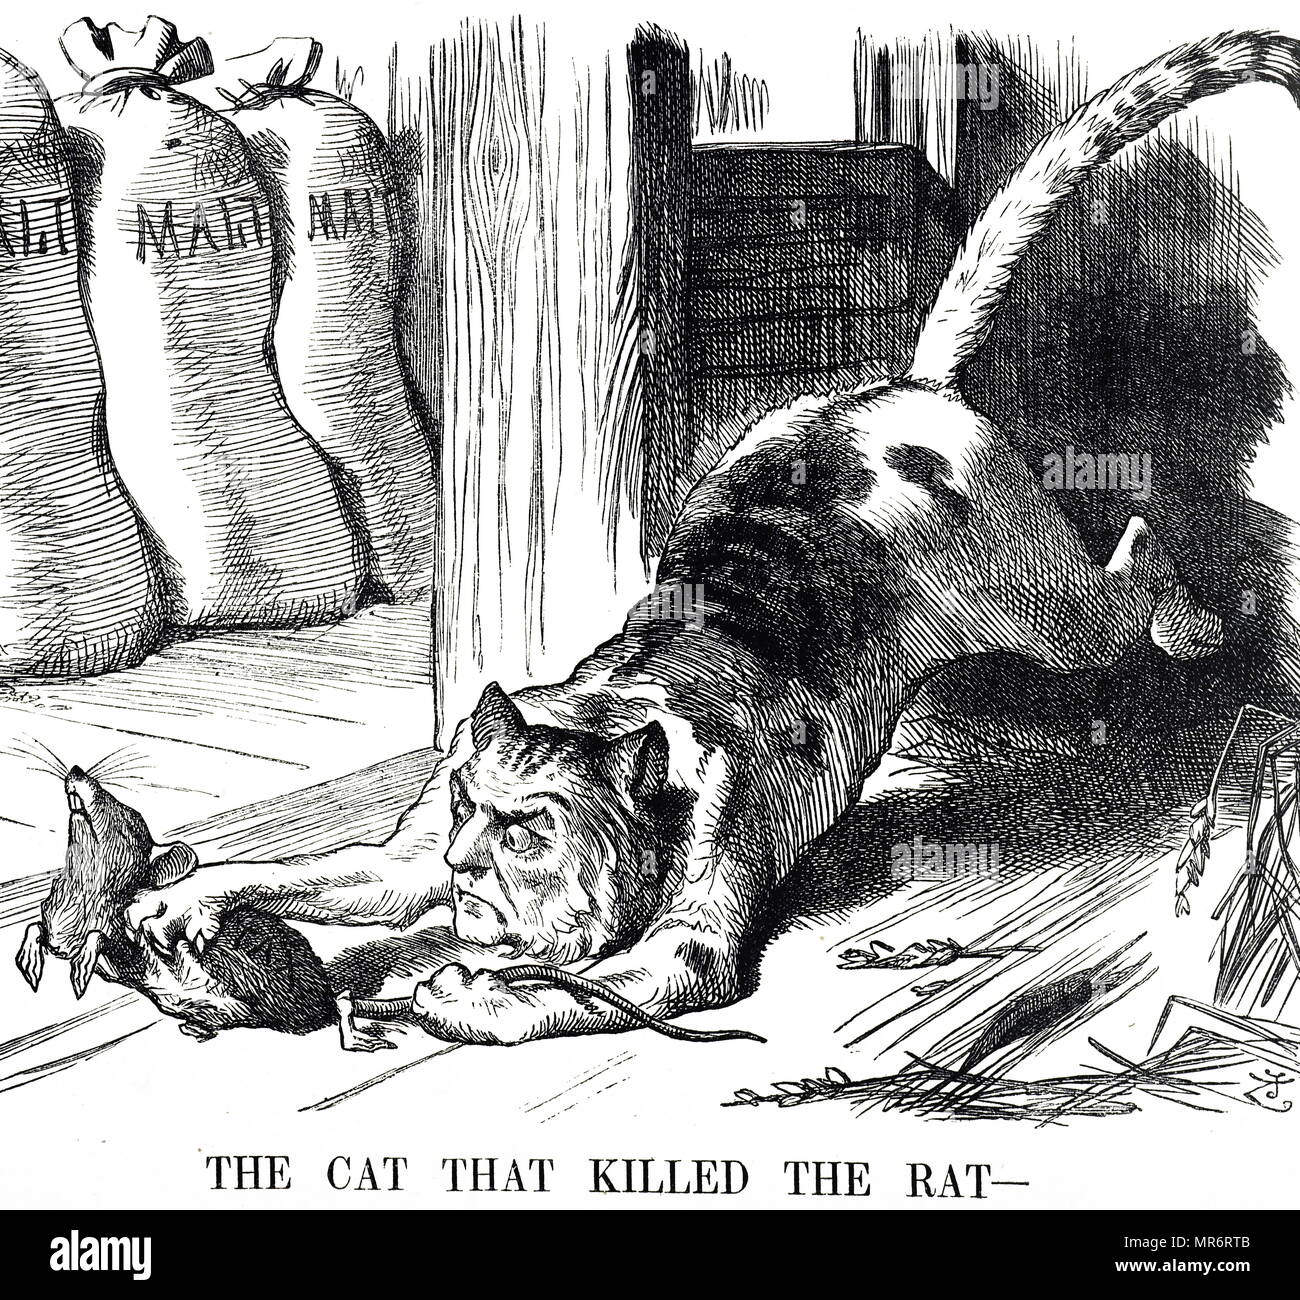 Cartoon commenting on the abolishing of Malt Tax in 1880. William Ewart  Gladstone is depicted as a cat who killed the rat (the tax). William Ewart  Gladstone (1809-1898) a British statesman of